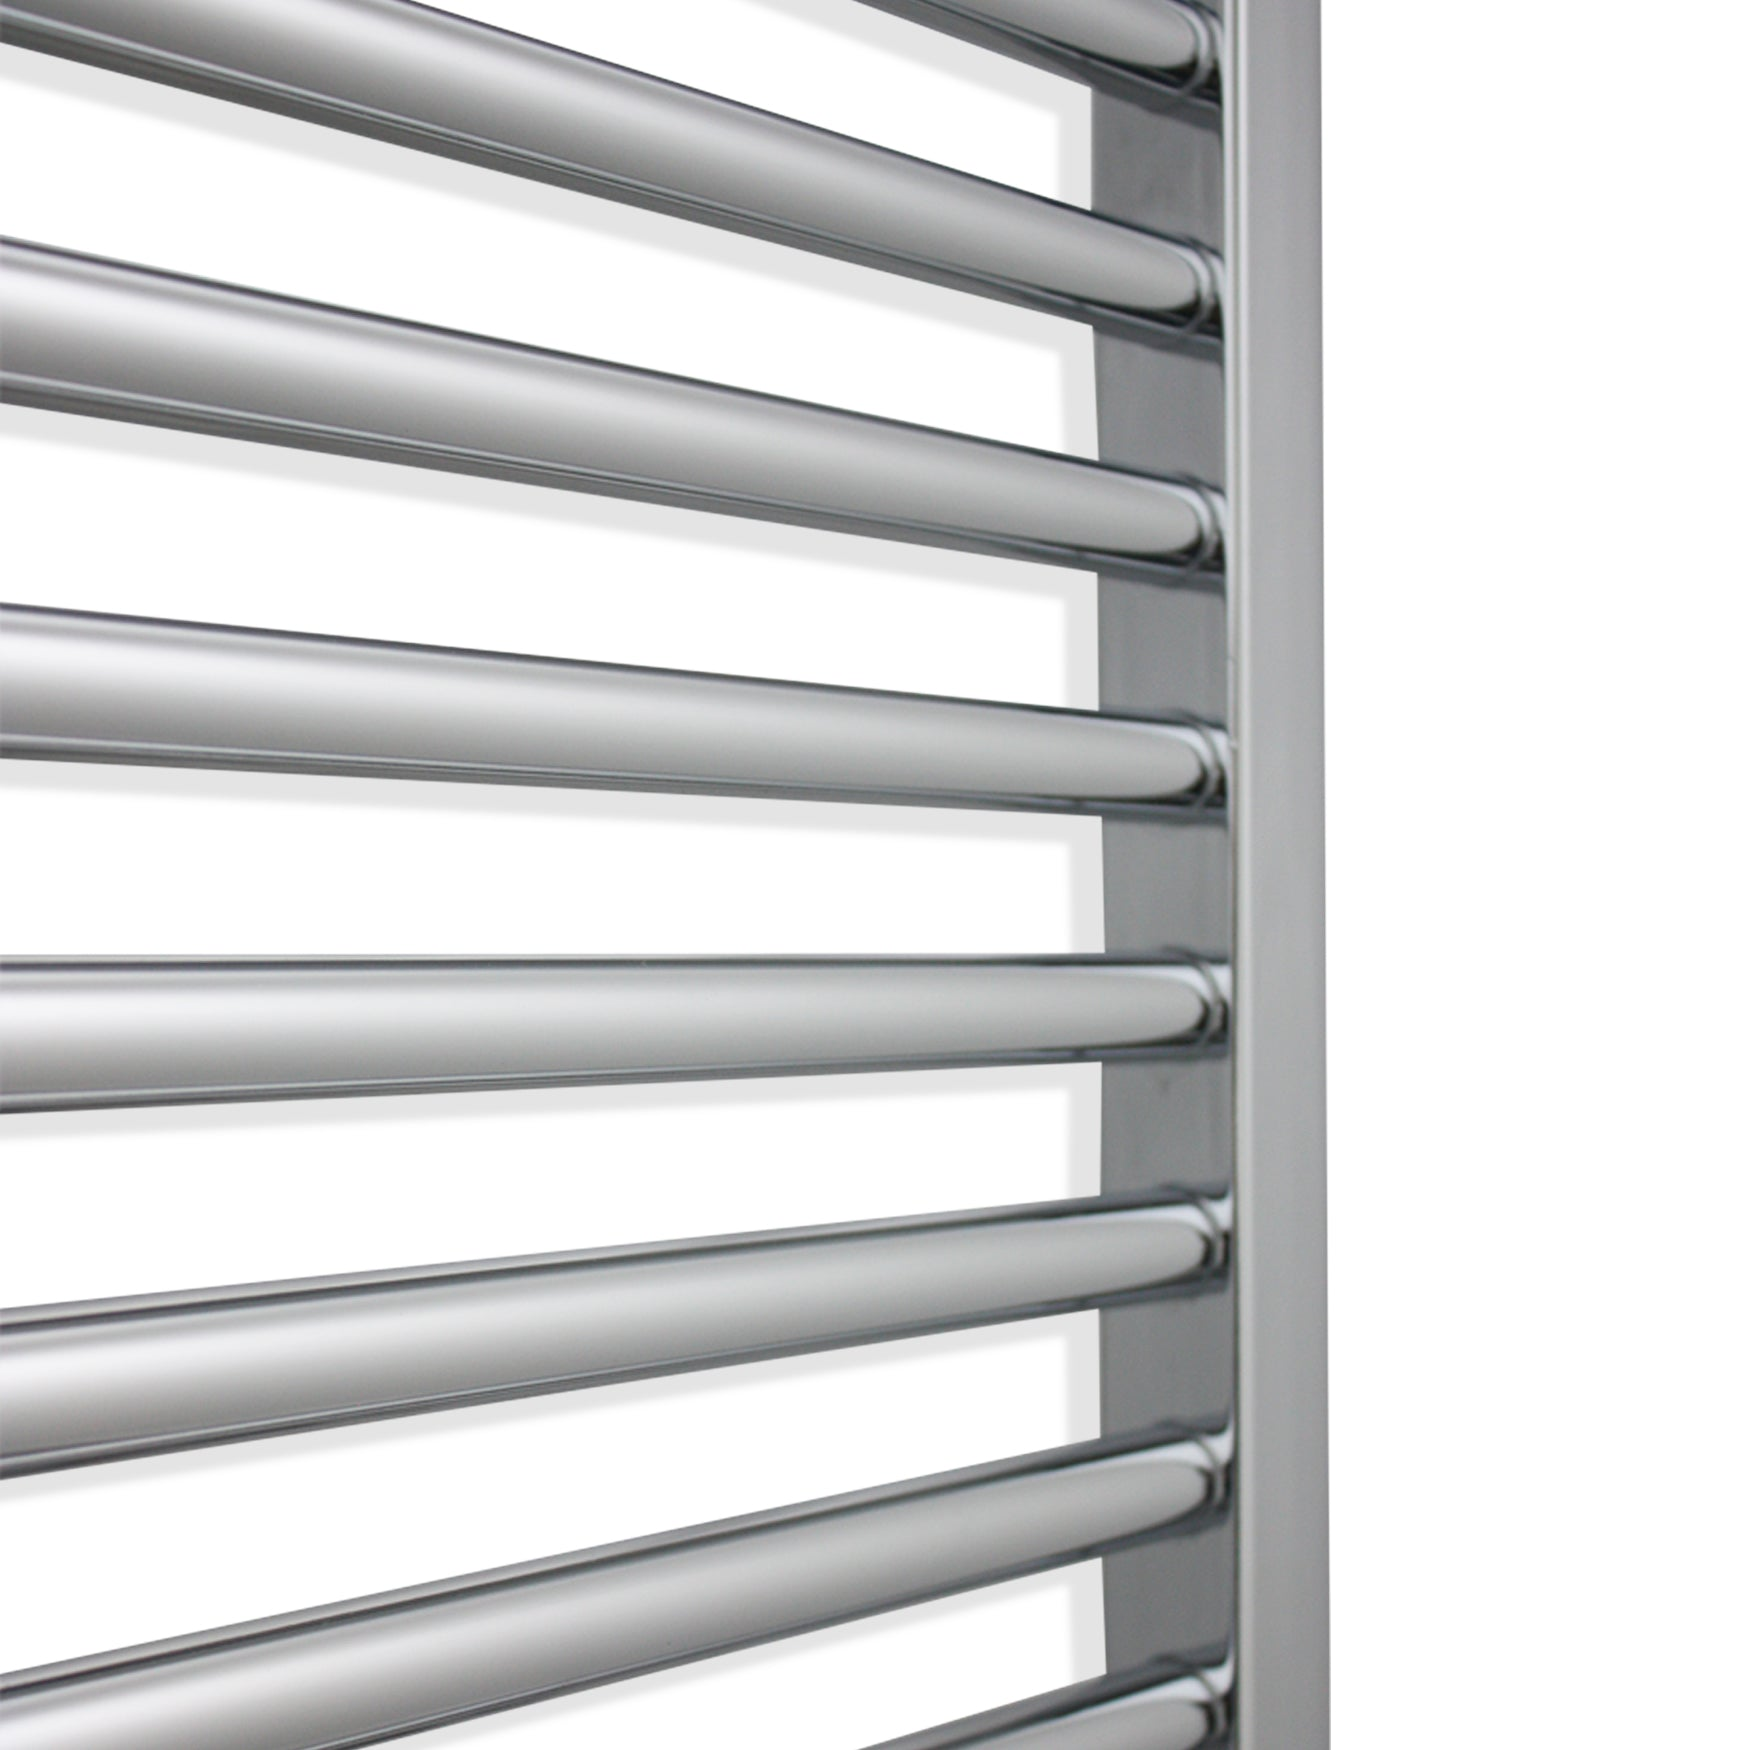 600mm Wide 400mm High Flat Chrome Heated Towel Rail Radiator HTR